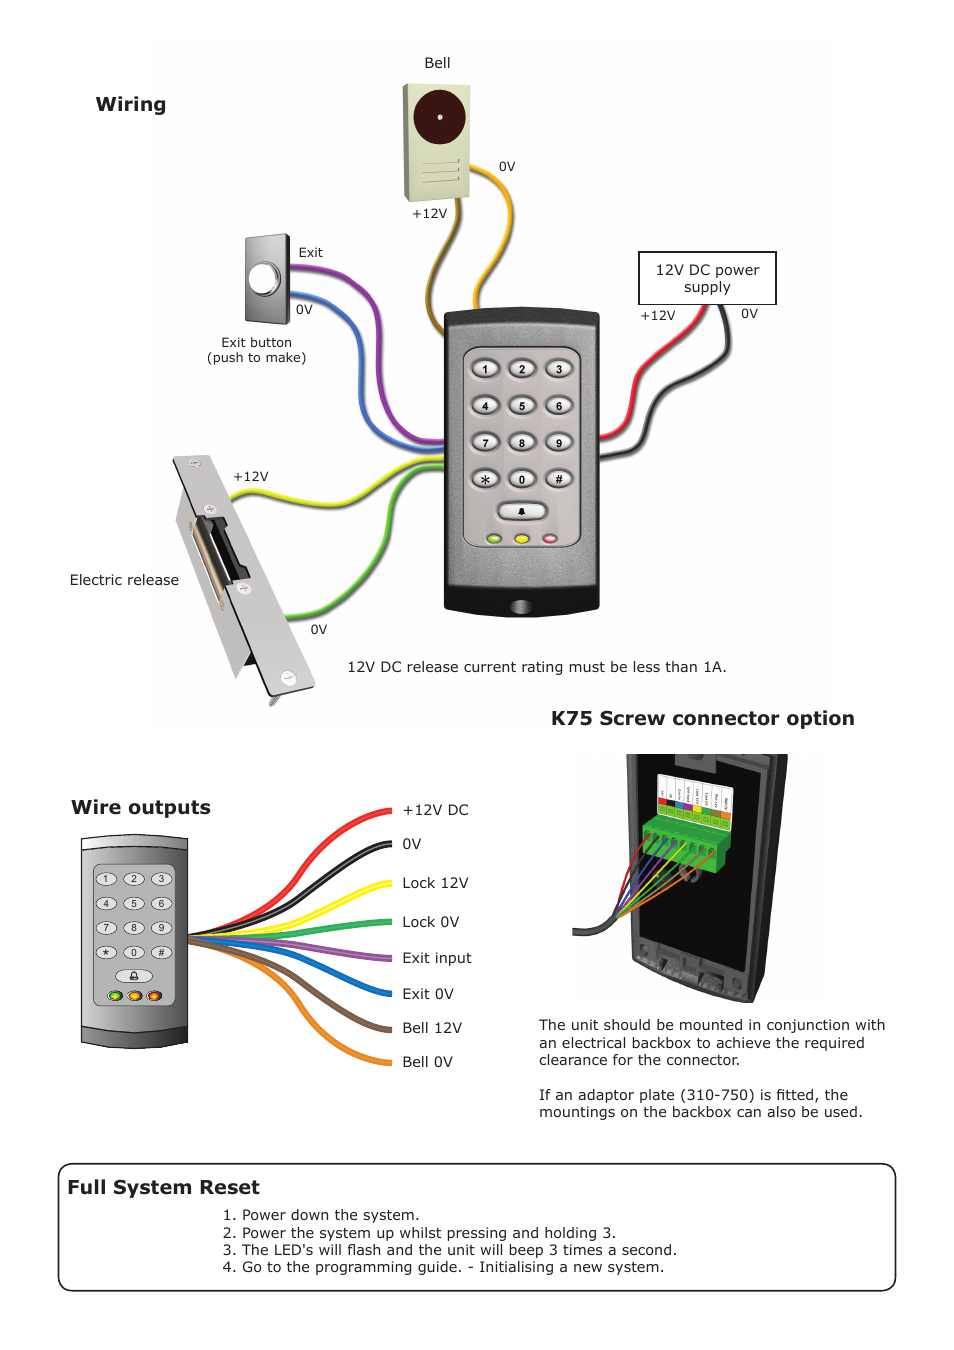 Wire Outputs  Wiring  Full System Reset